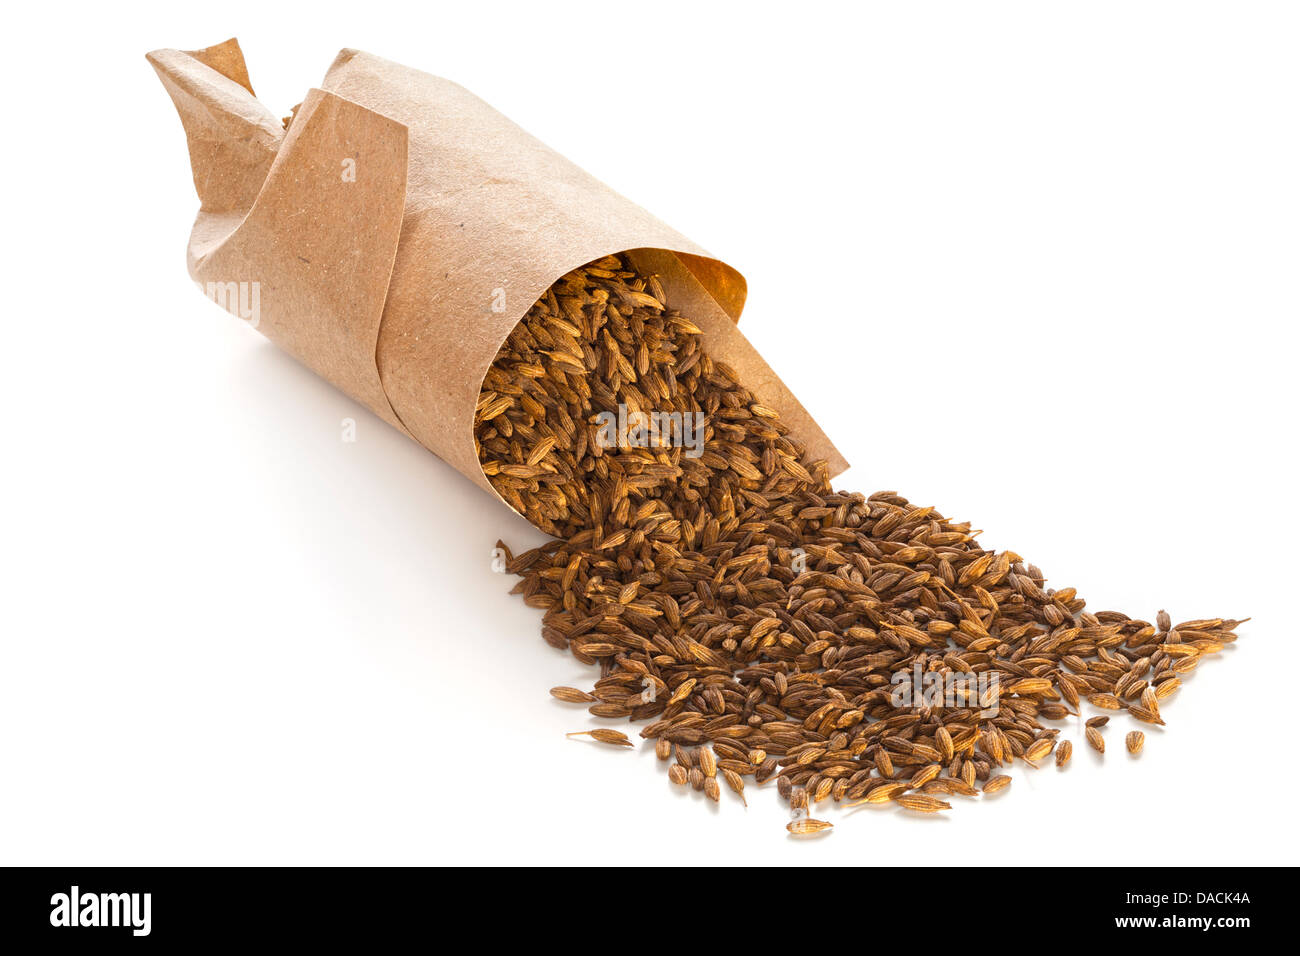 Roasted cumin seeds spilling from twist of brown paper, on white background with soft natural shadow, front to back - Stock Image